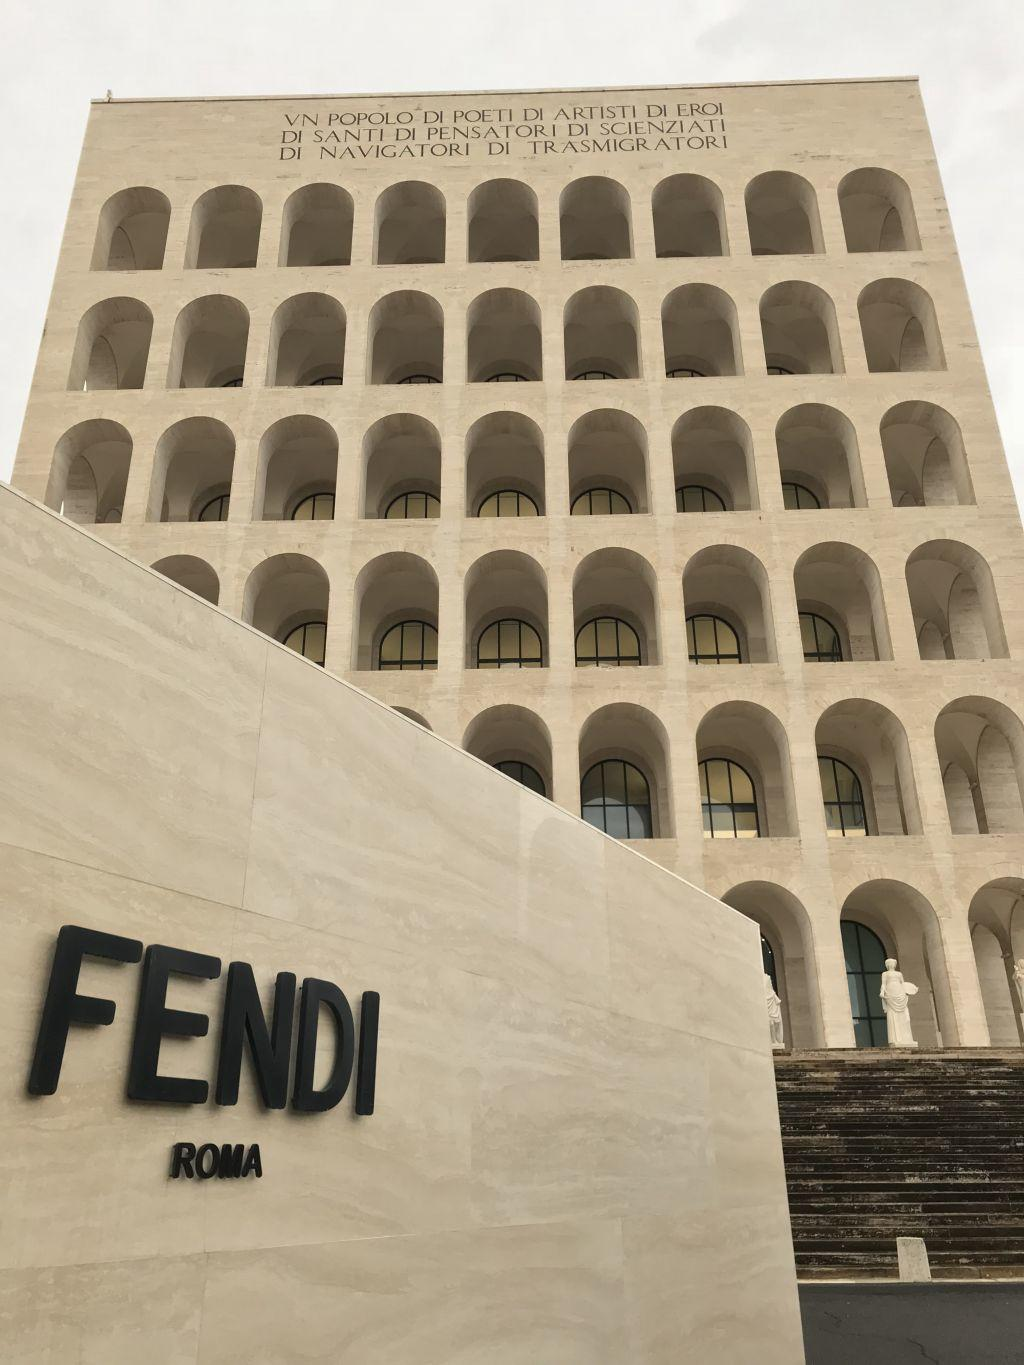 Fendi headquarters in Rome